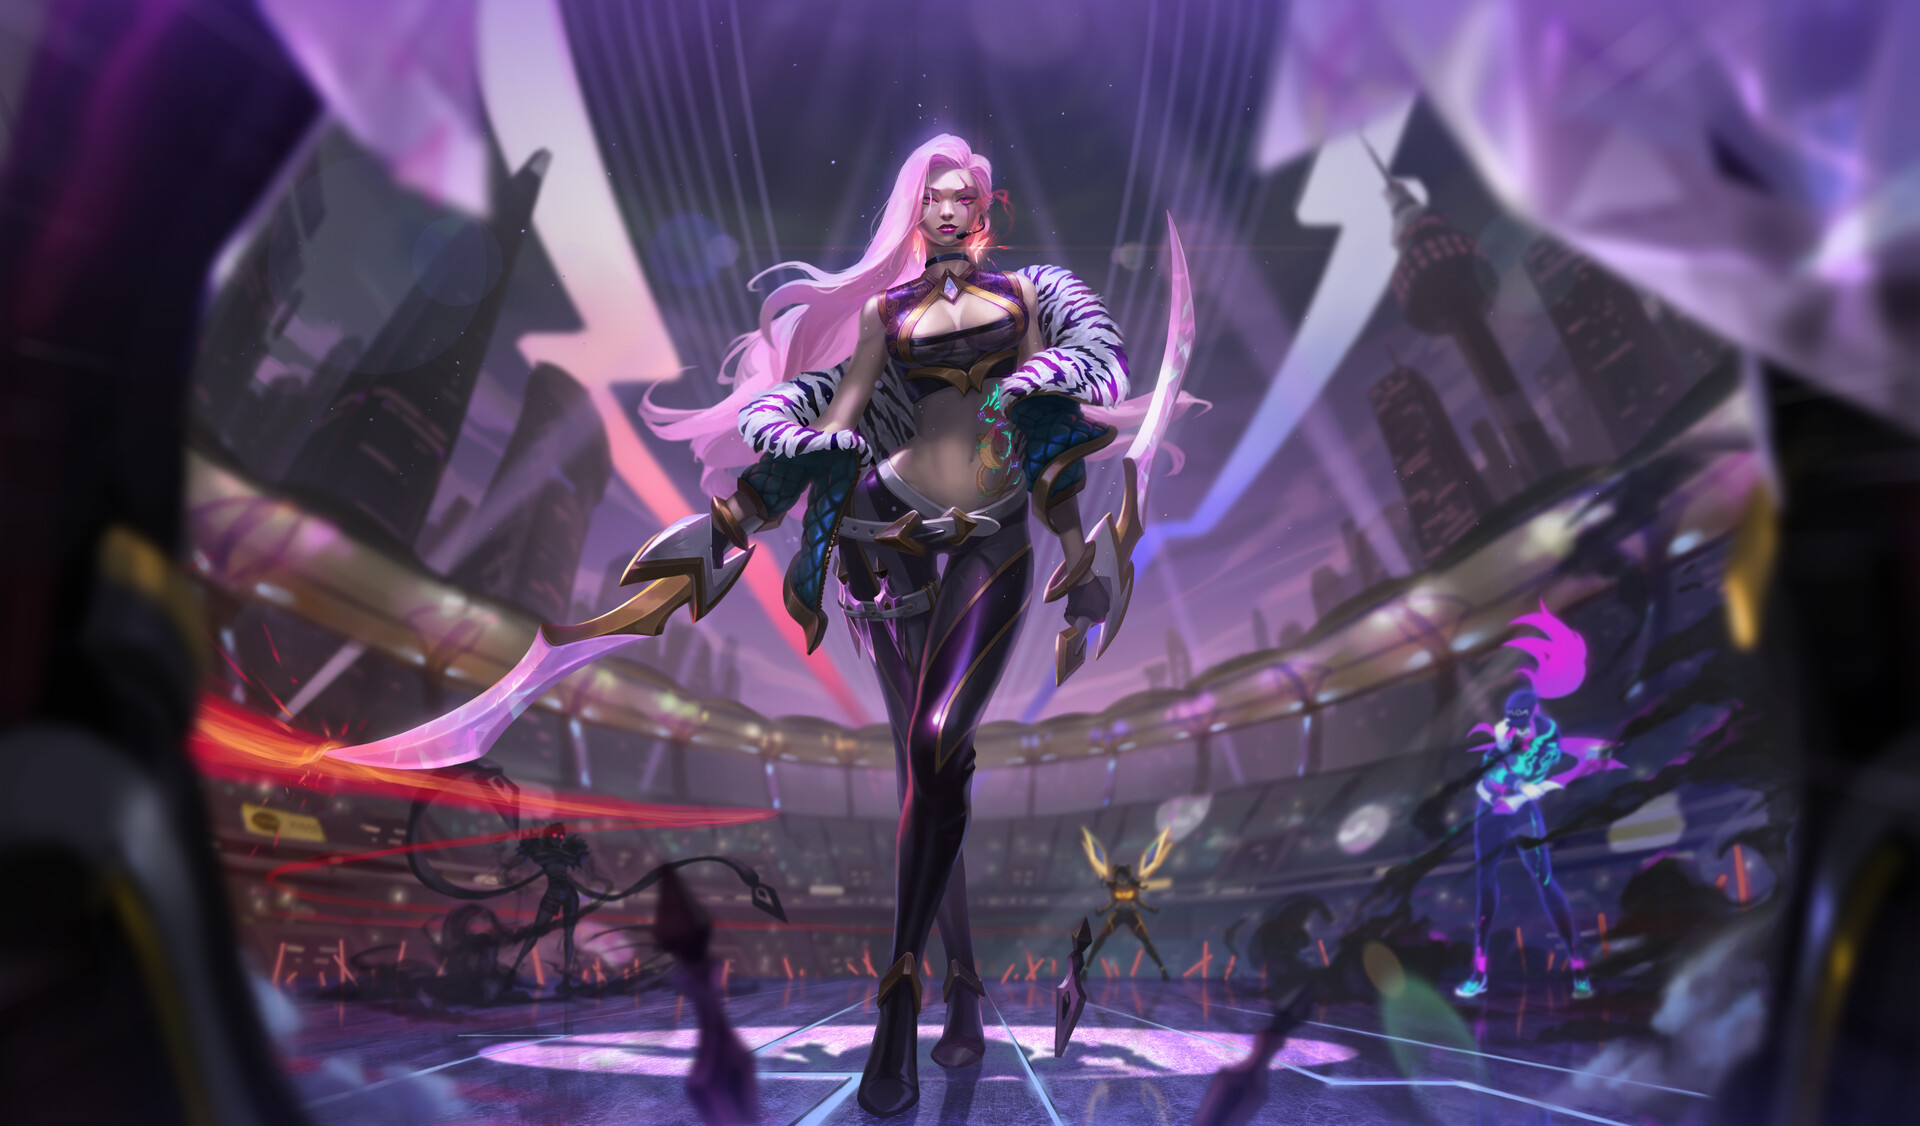 General 1920x1126 katarina (league of legends) League of Legends video games K/DA pink hair long hair PC gaming weapon belly button belly bare midriff